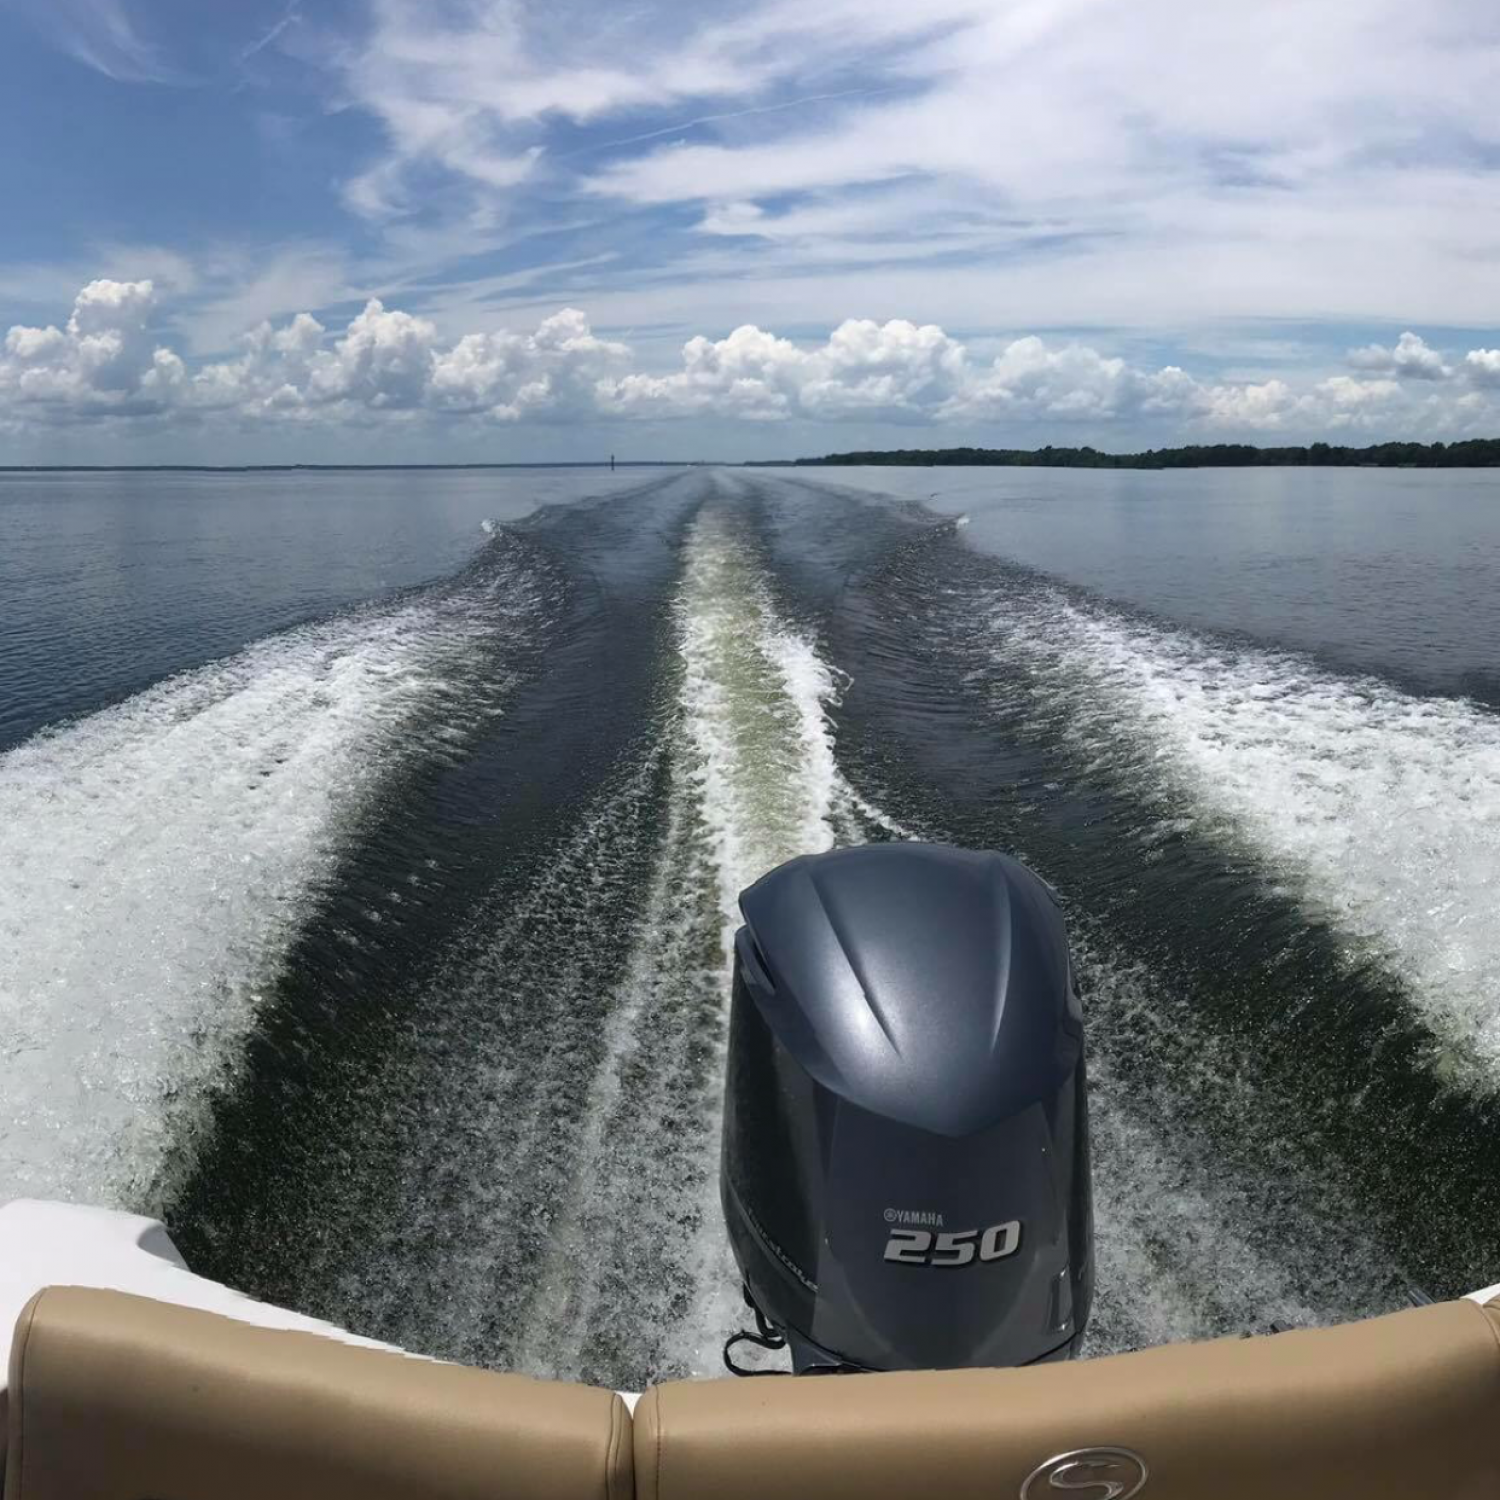 Title: Lake Daze - On board their Sportsman Heritage 231 Center Console - Location: Lake Marion, SC. Participating in the Photo Contest #SportsmanSeptember2018